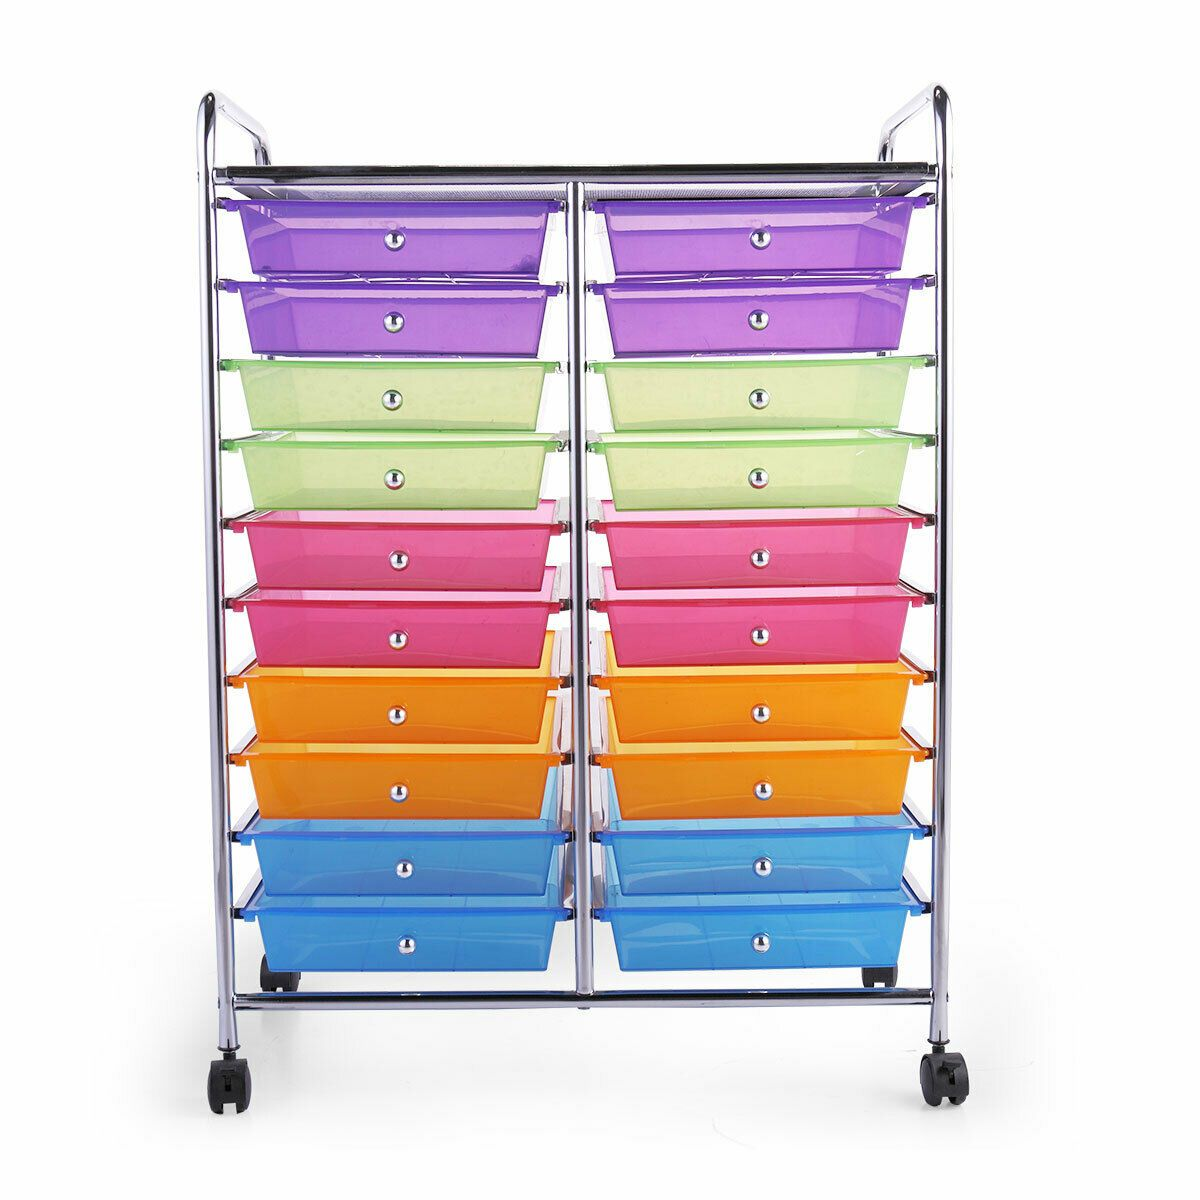 Details About 10 Layers Storage Cart Trolley Organizer W 20 Plastic Drawers 4 Rolling Wheels In 2020 Storage Cart Shelf Baskets Storage Rolling Storage Cart